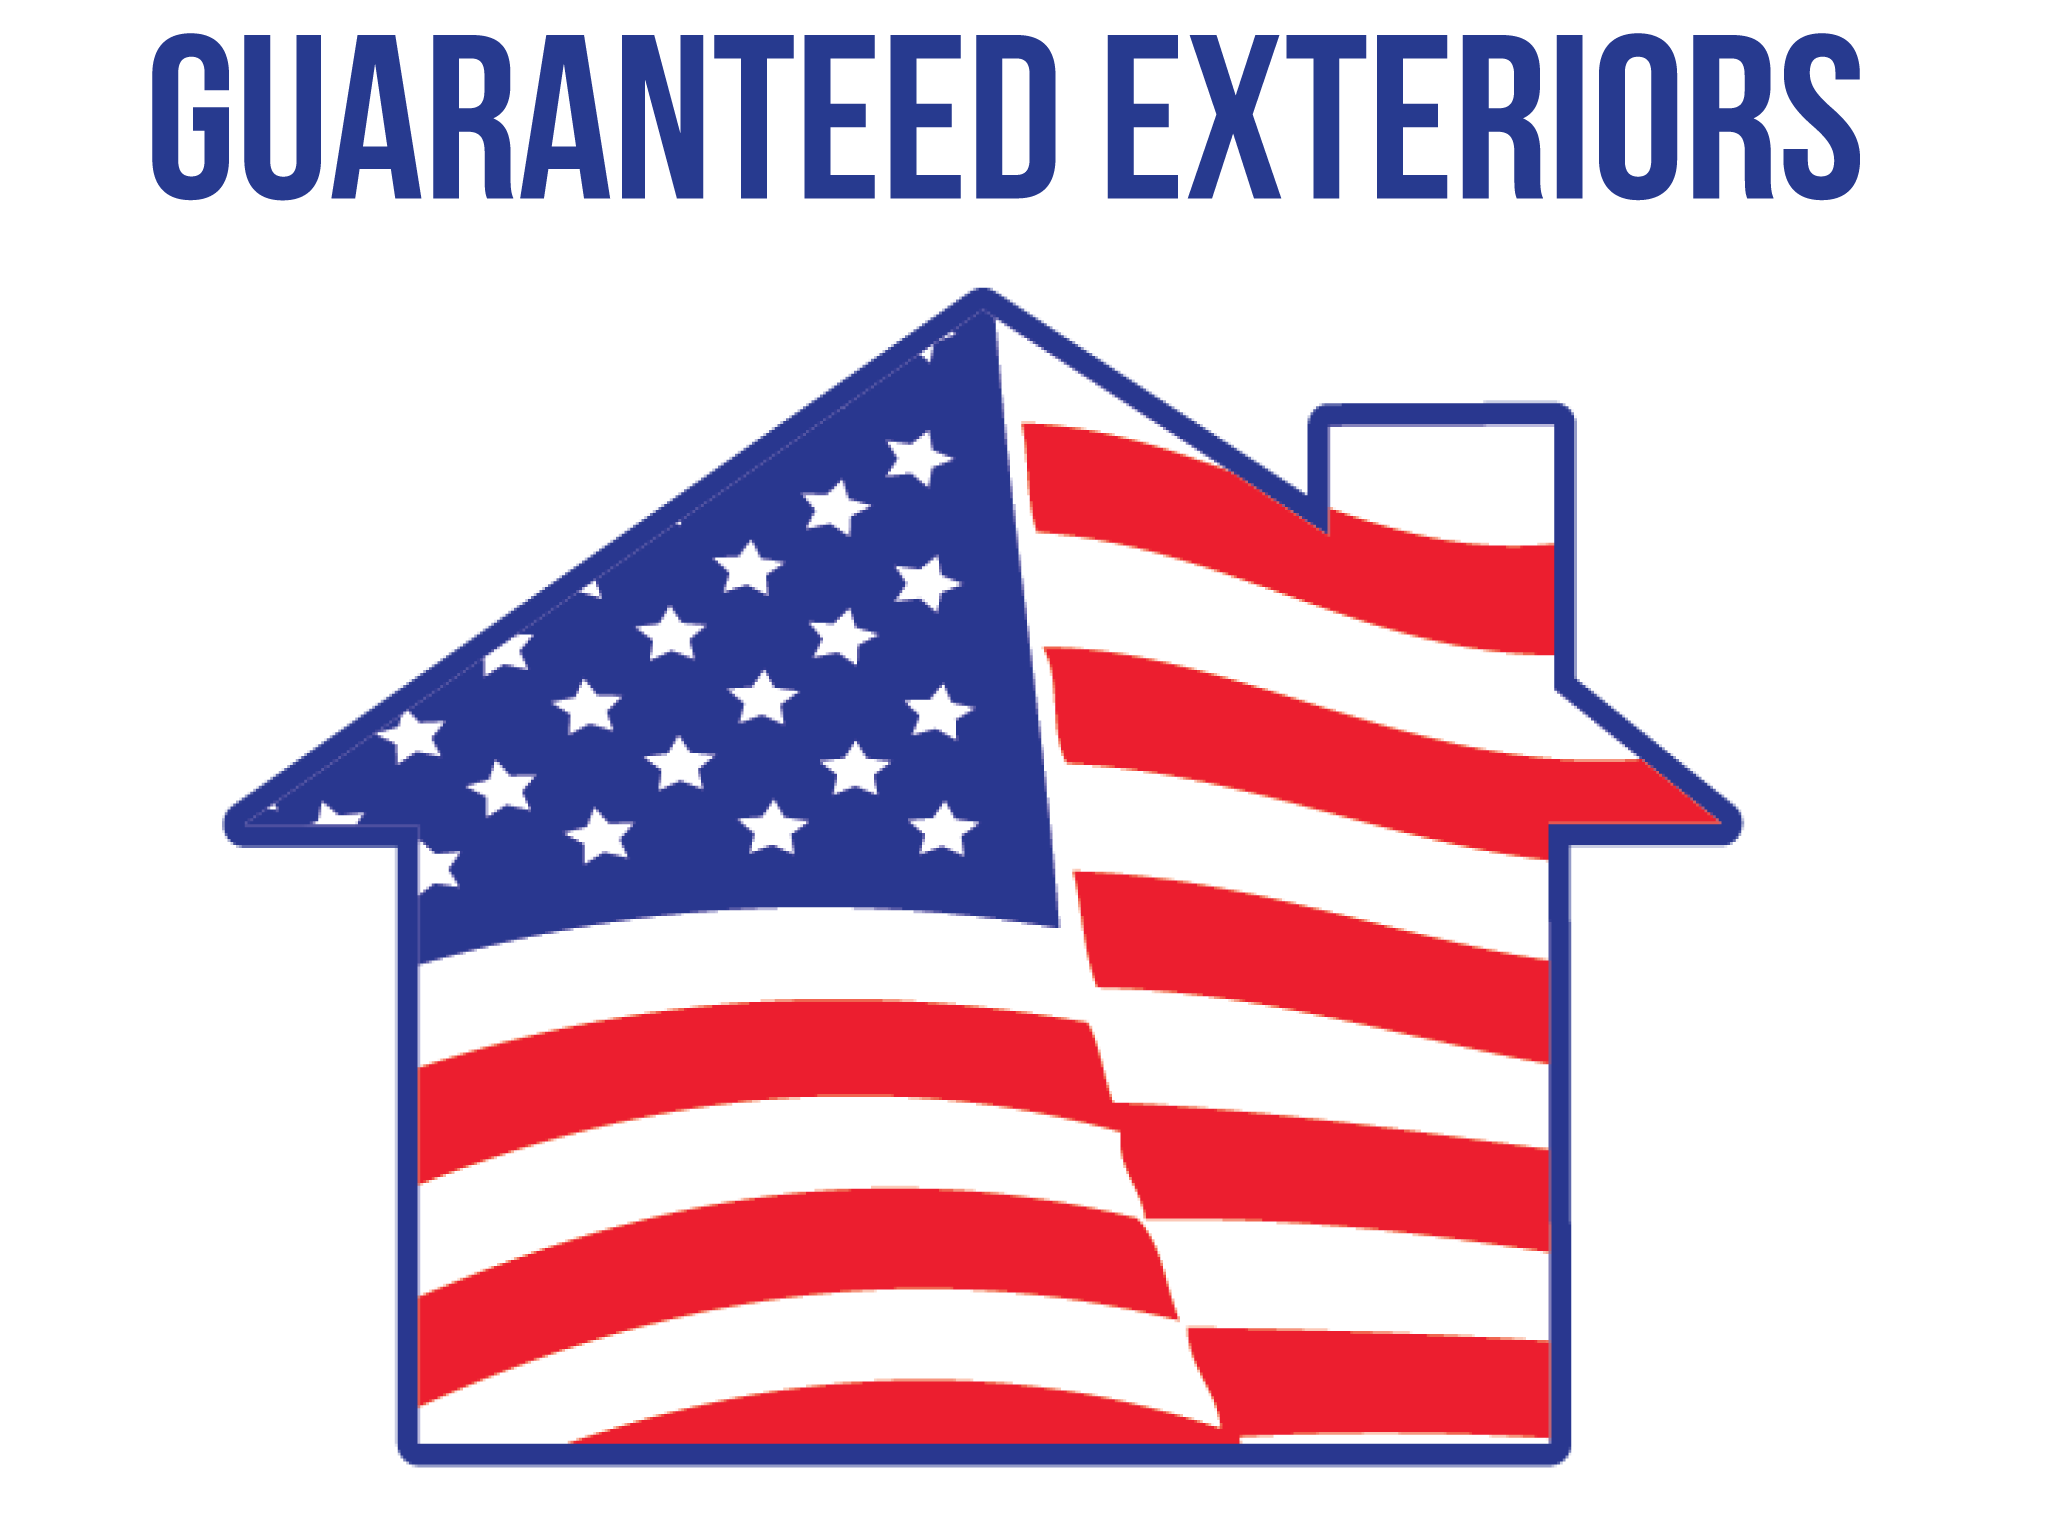 Guaranteed Exteriors